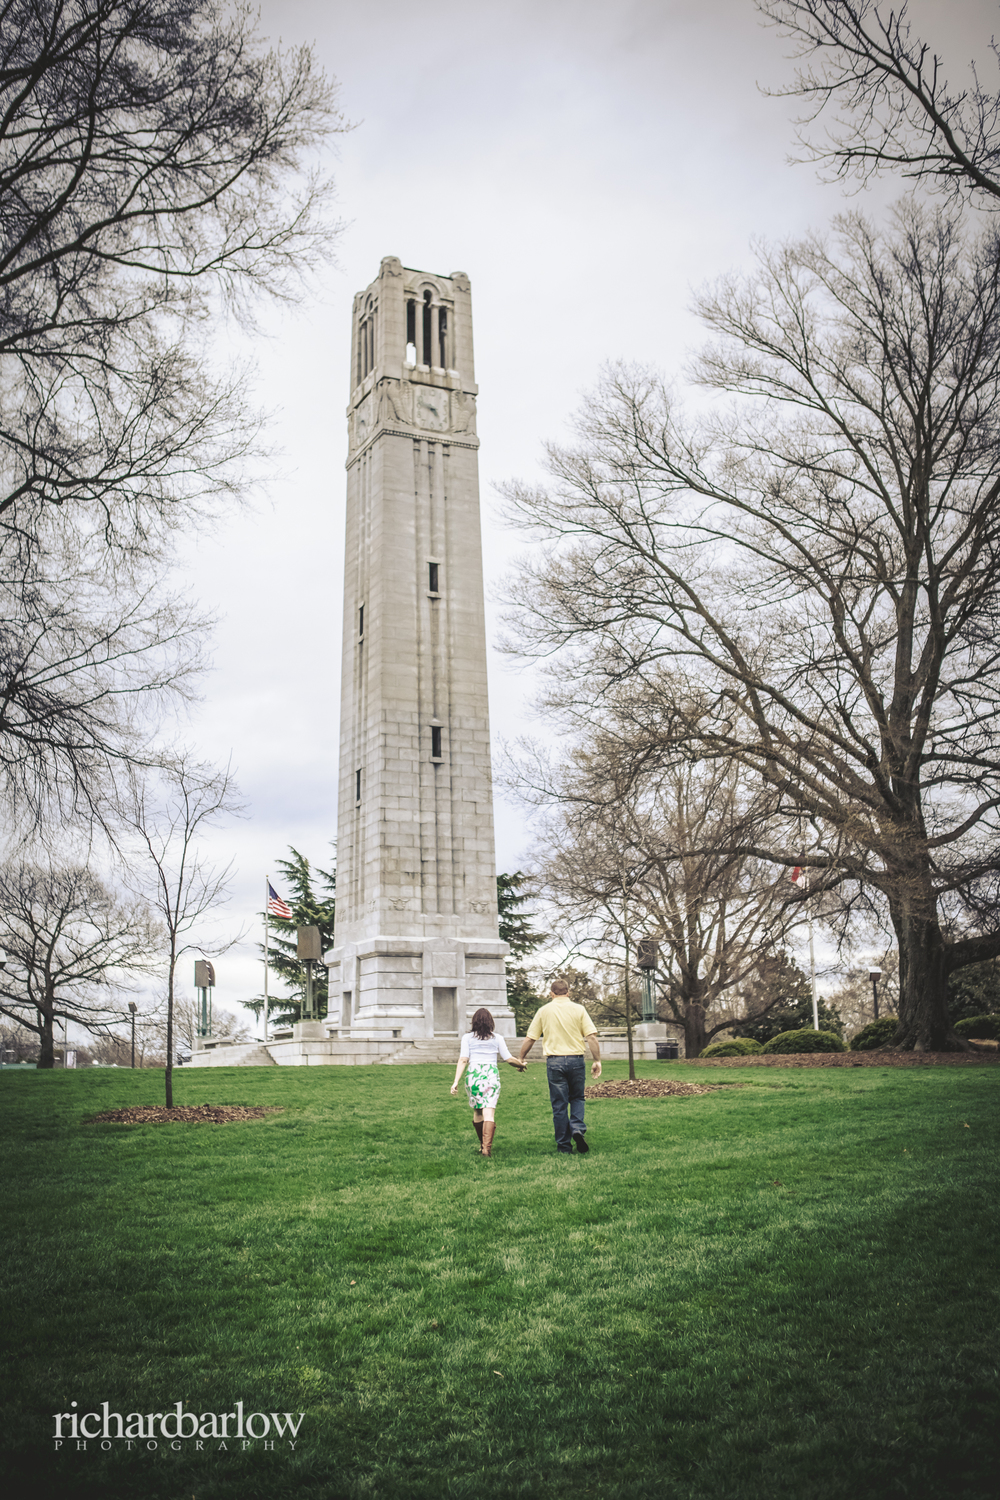 richard barlow photography - Jason and Karen Engagement Session NC State-3